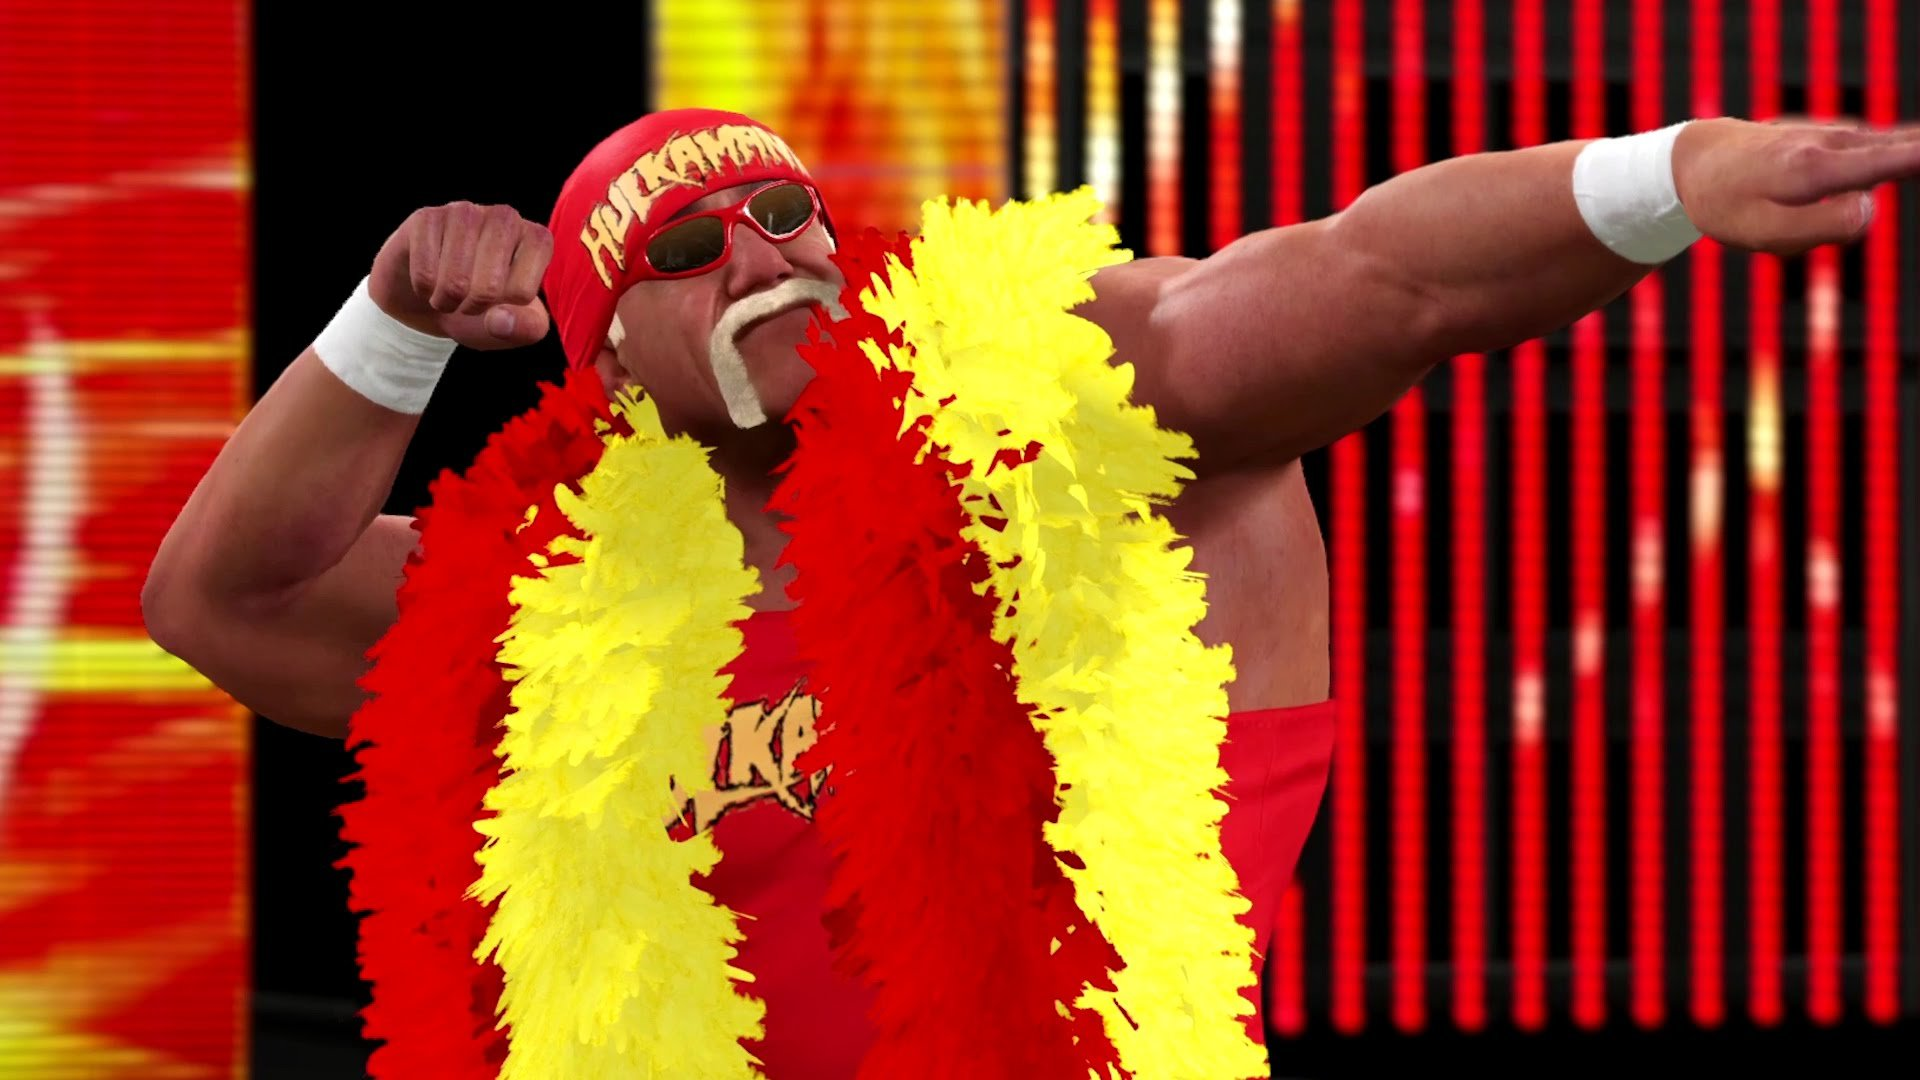 Download full hd 1920x1080 Hulk Hogan computer background ID:438457 for free